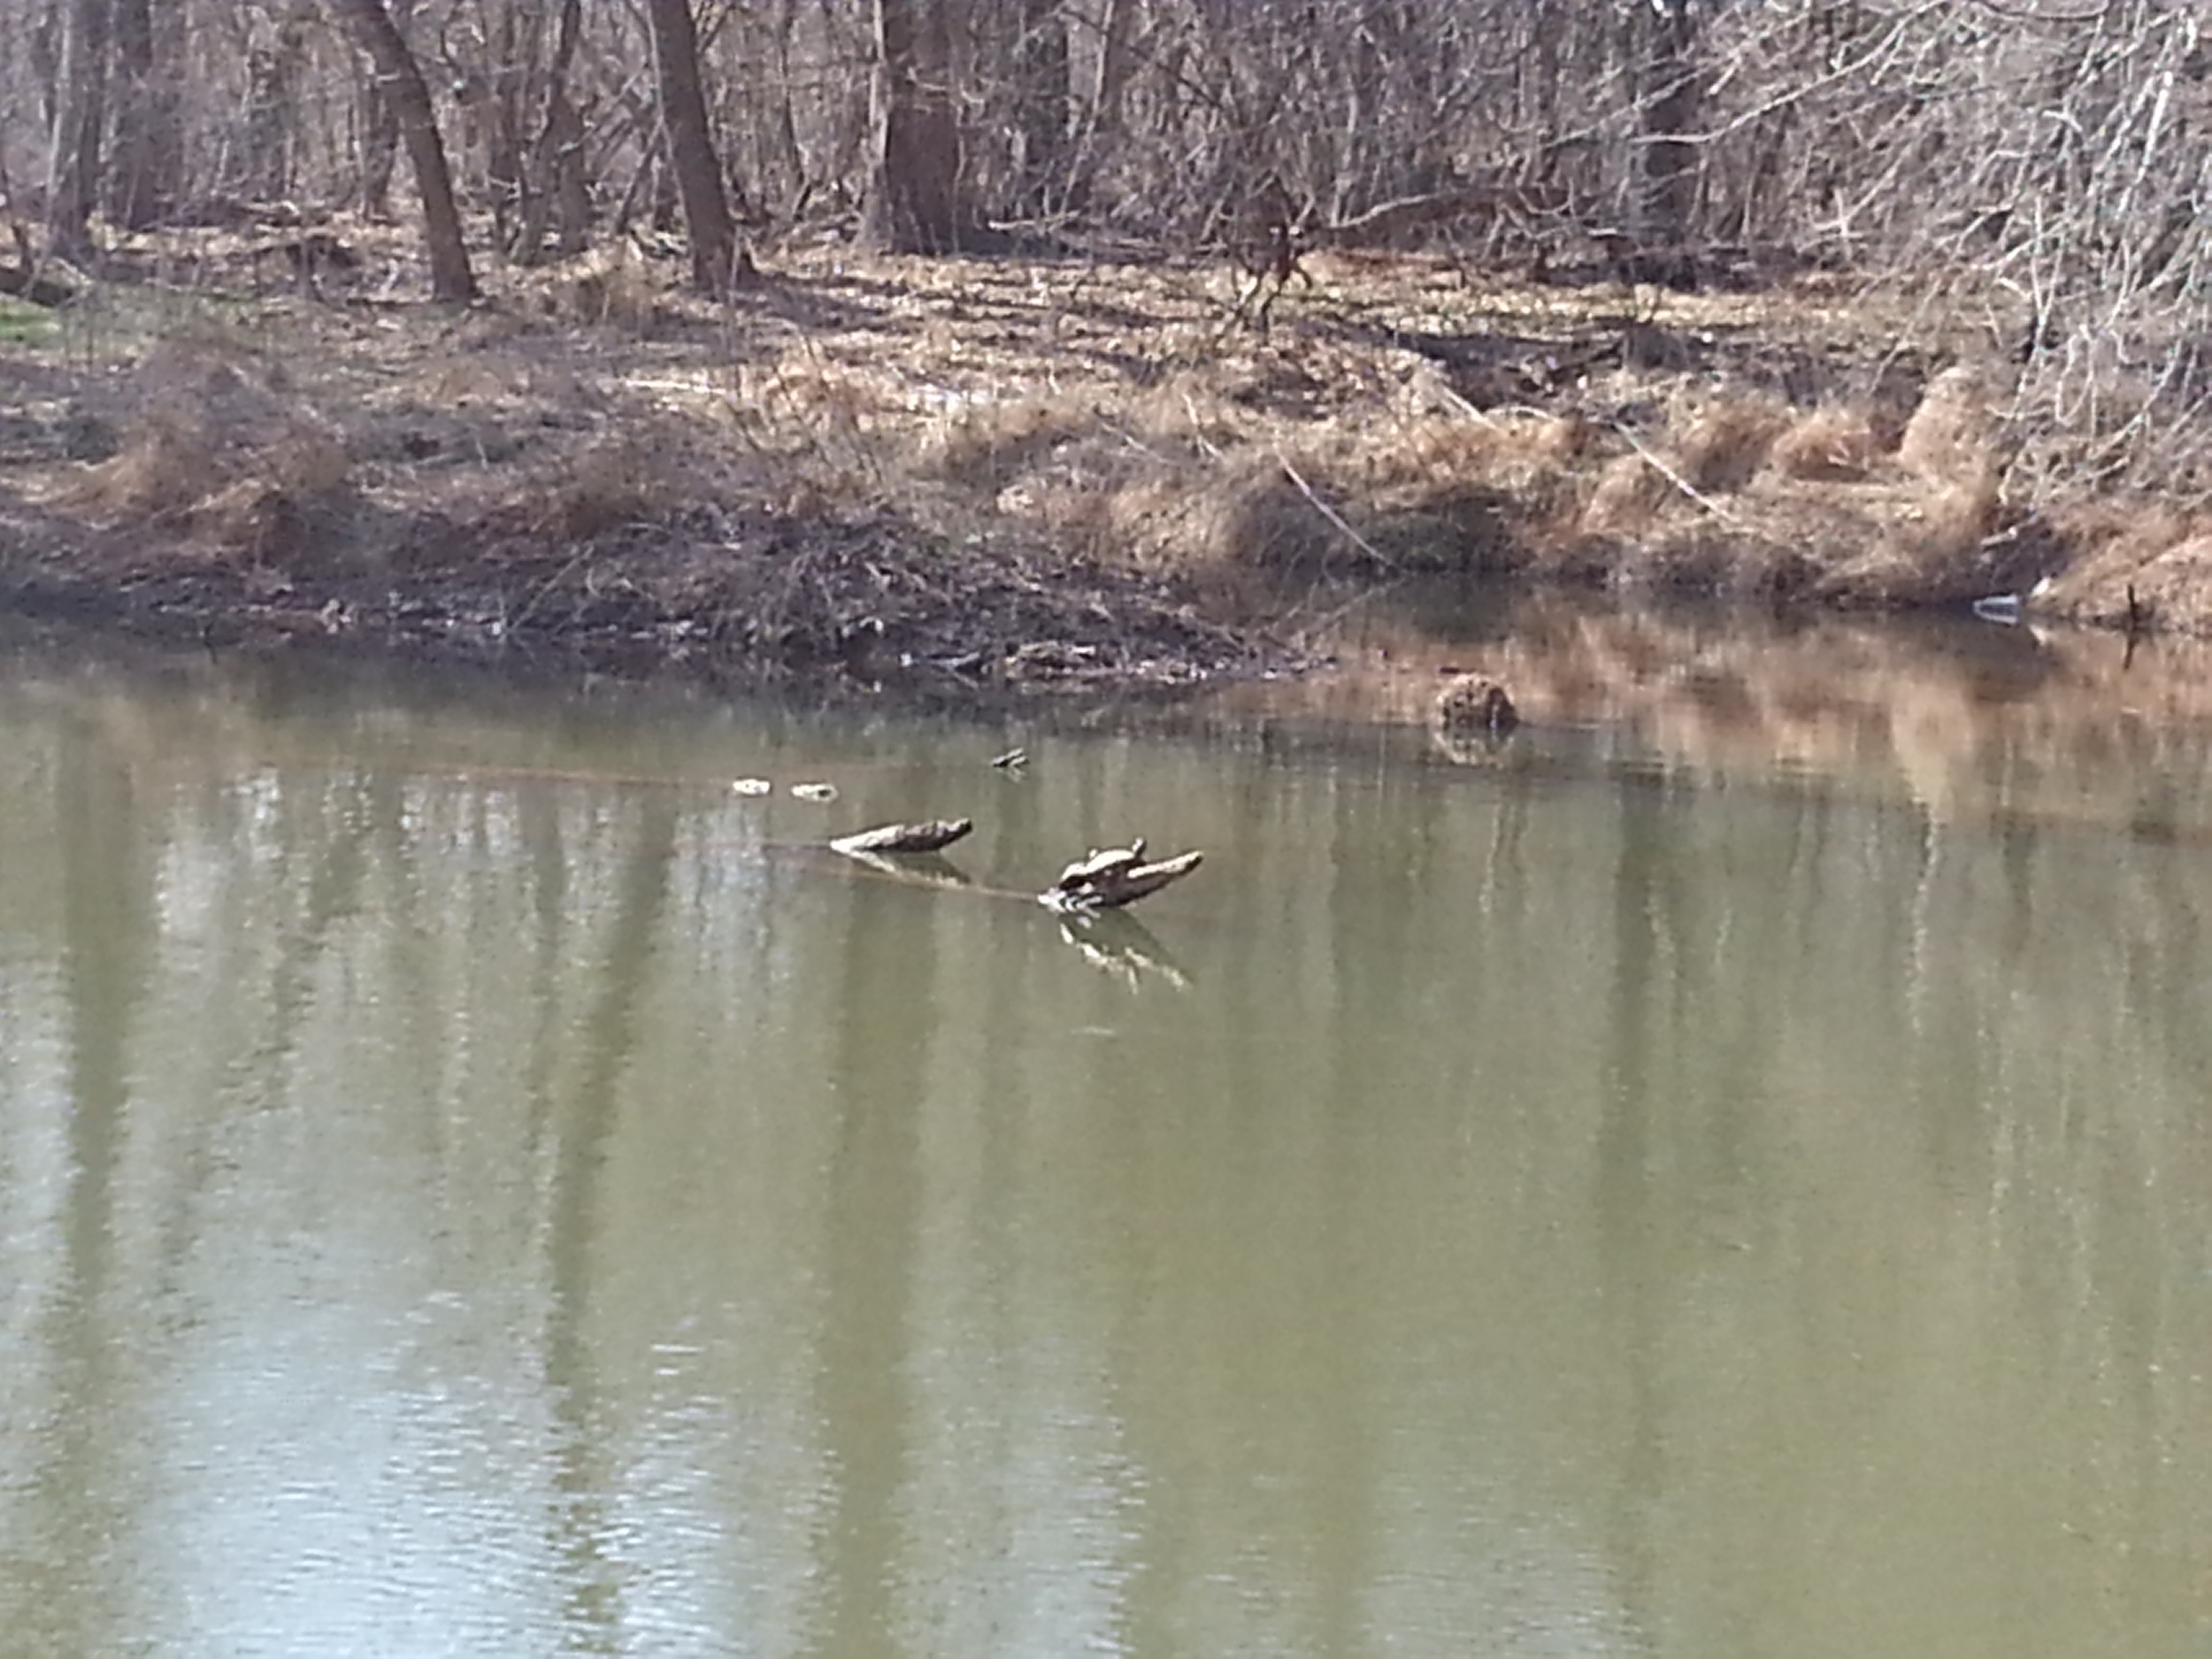 Turtles sunning on a log in the middle of the Eno River, West Point on the Eno Park